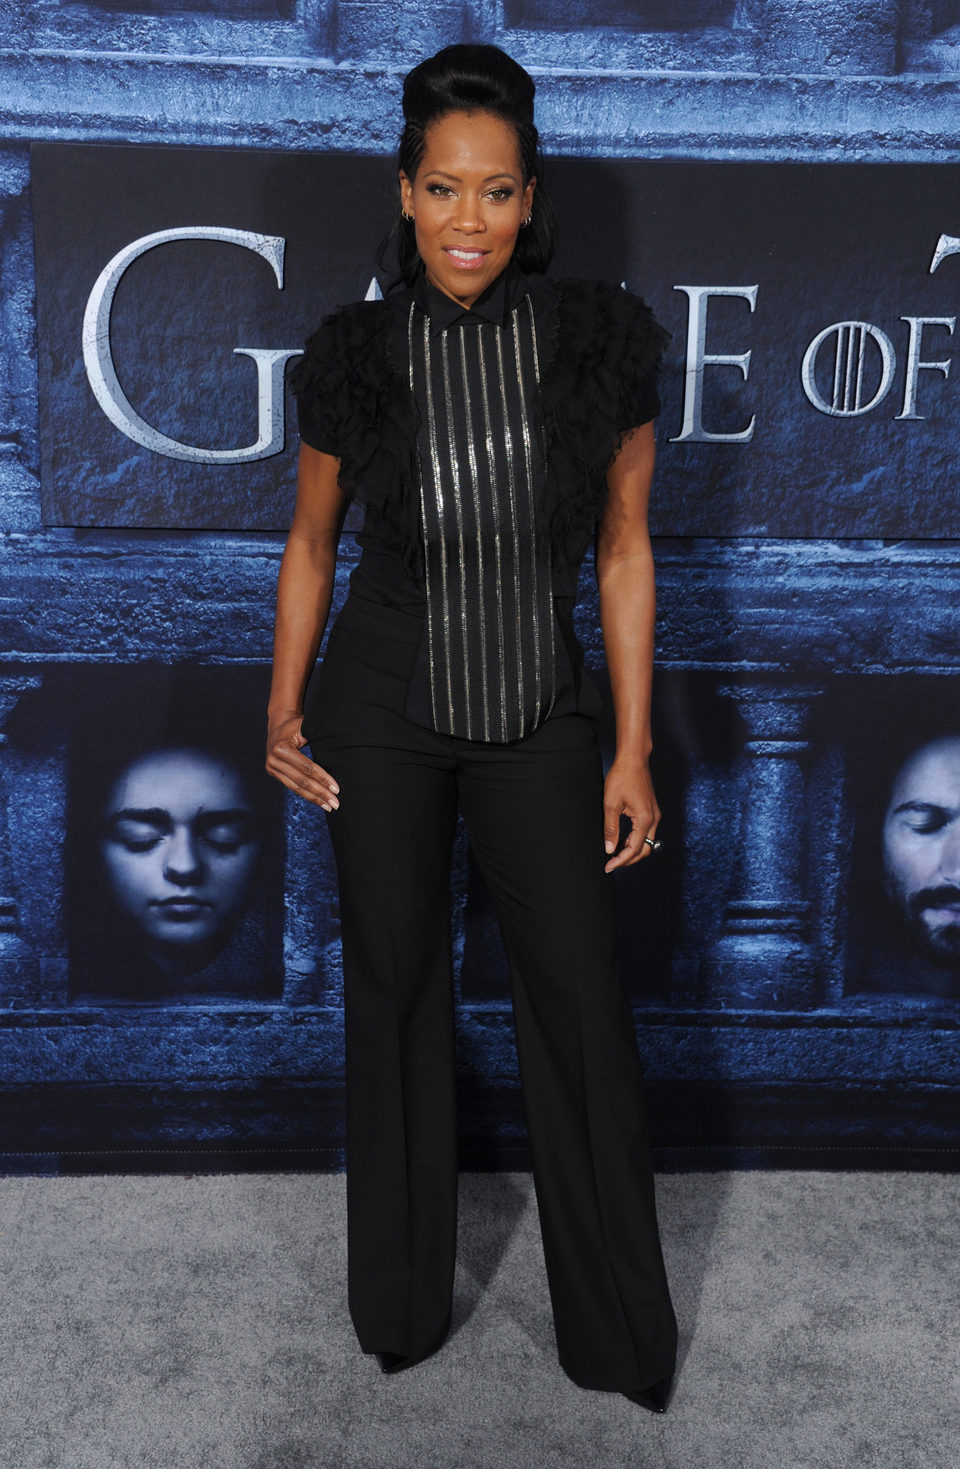 Regina King at the premiere of 'Game of Thrones' Season Six